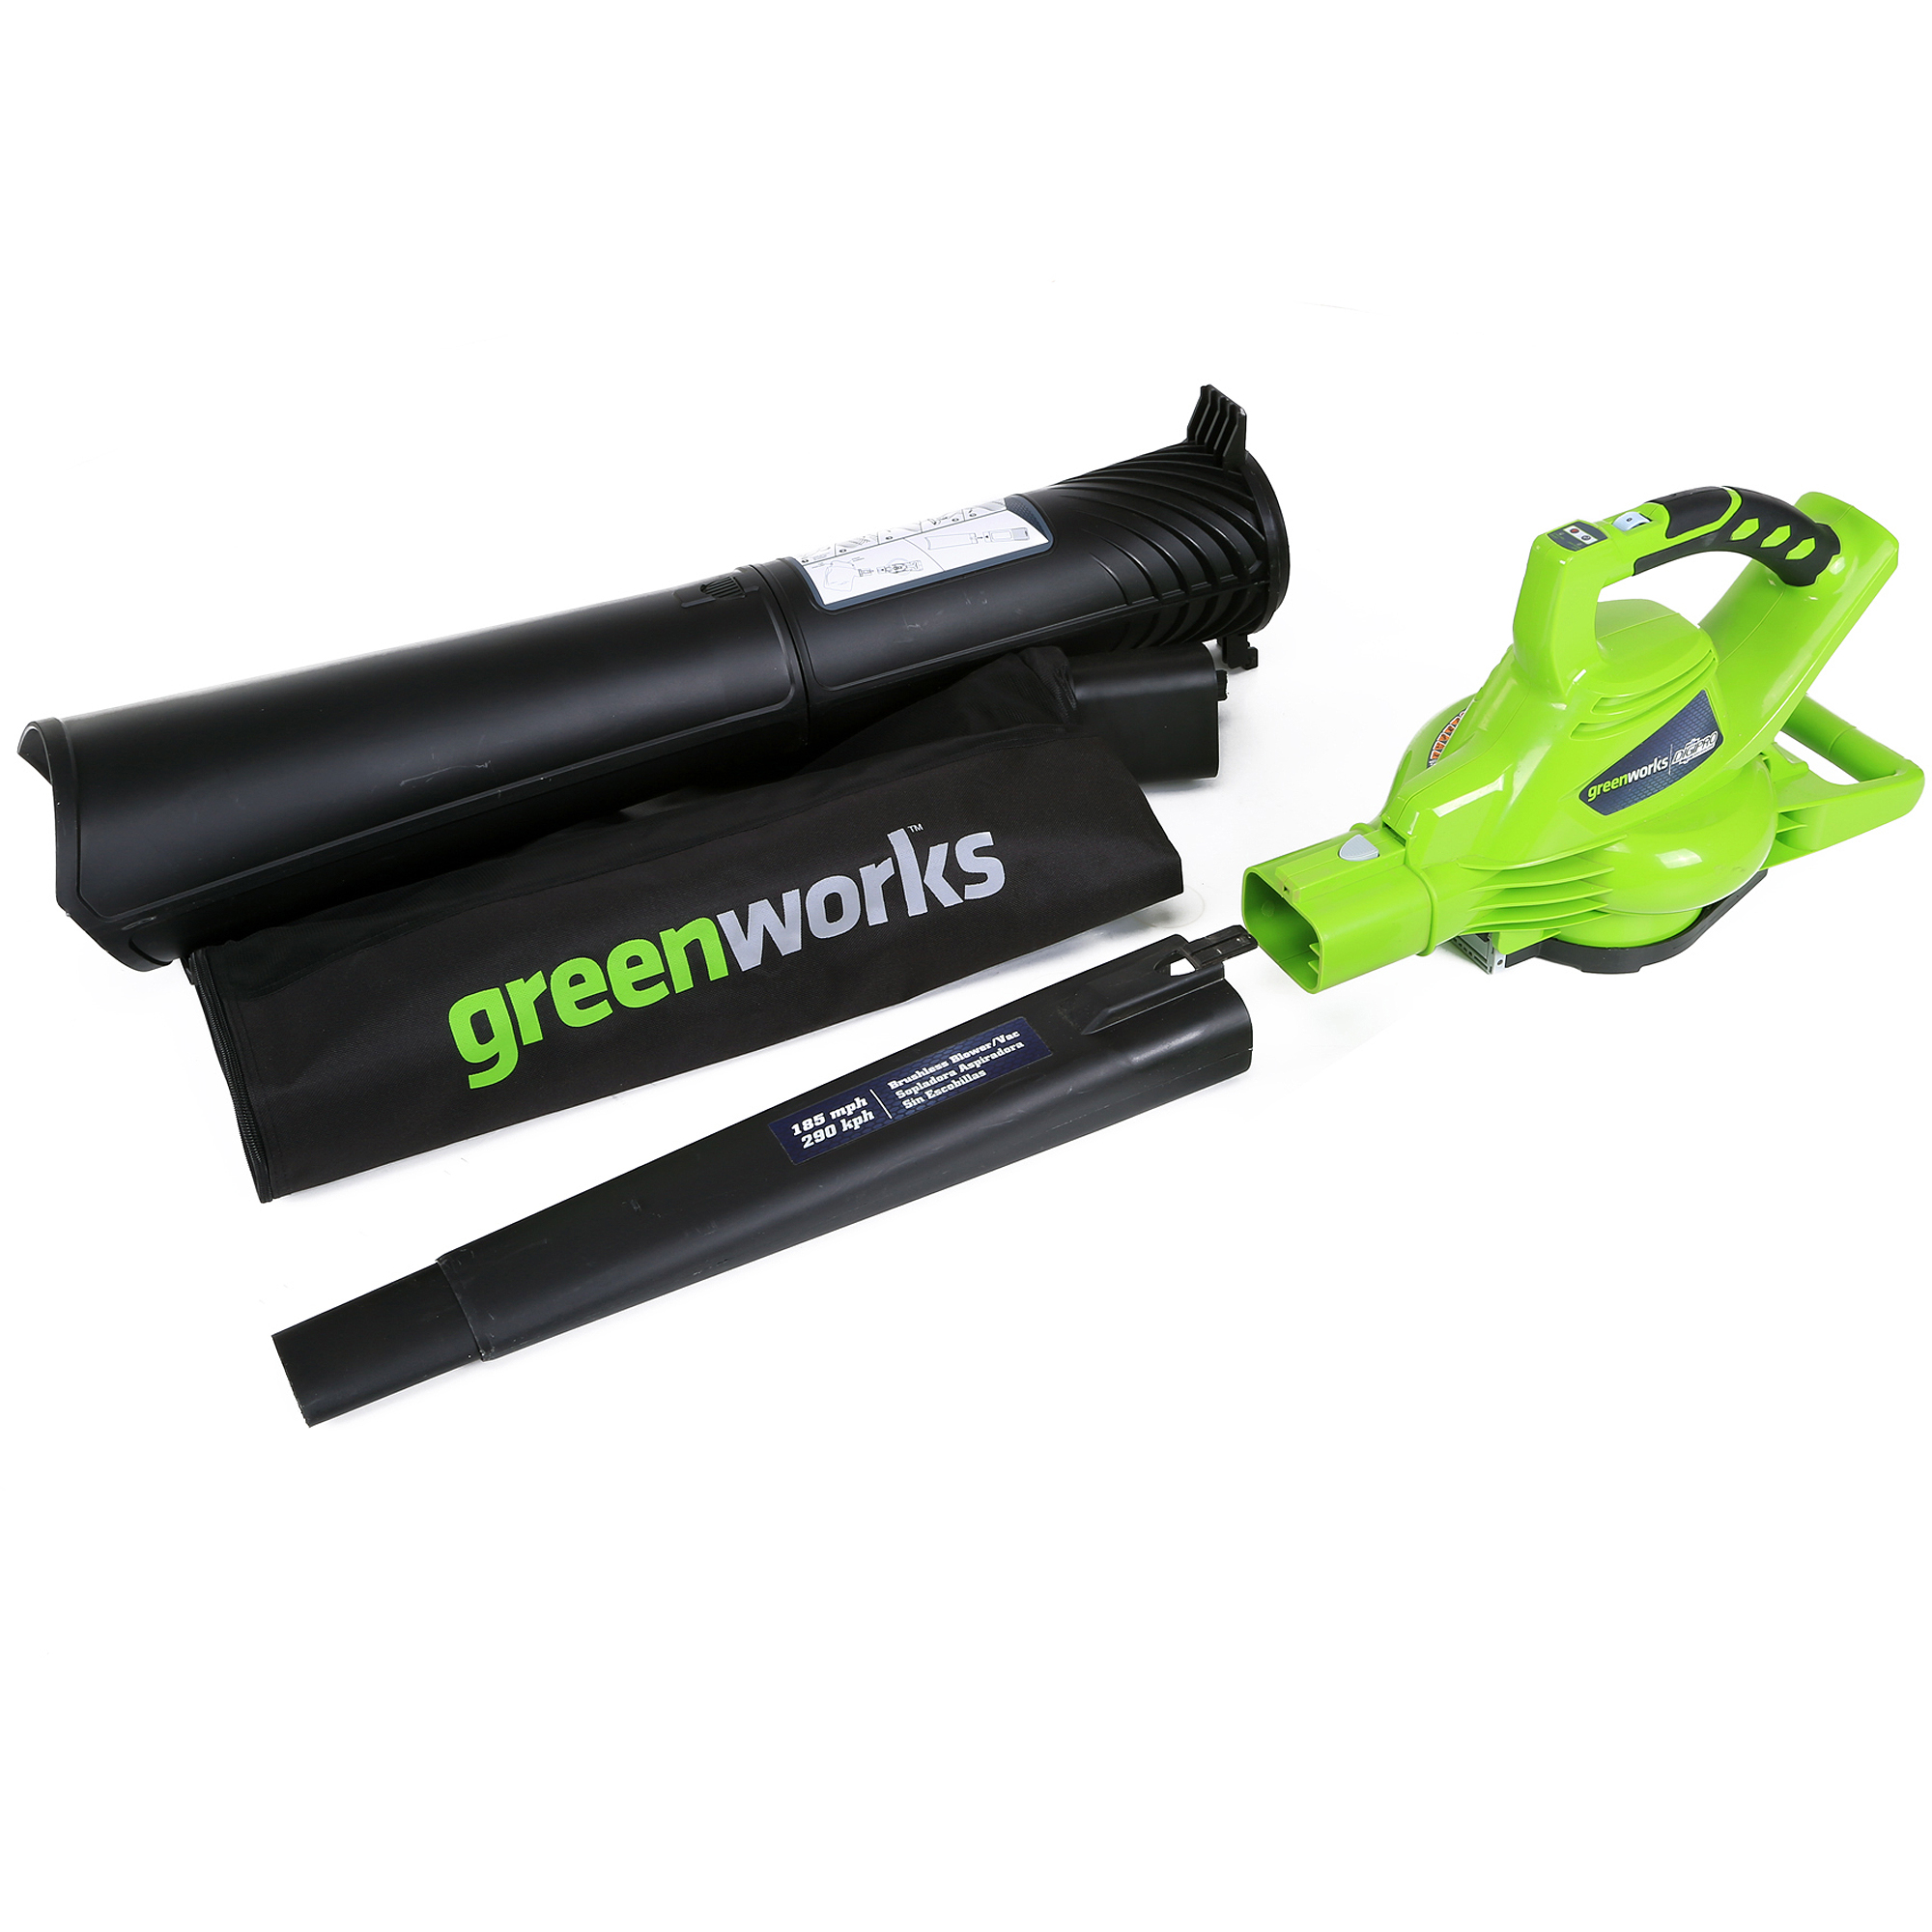 GreenWorks 24312 40V Brushless Leaf Blower, Battery and Charger Sold Separately